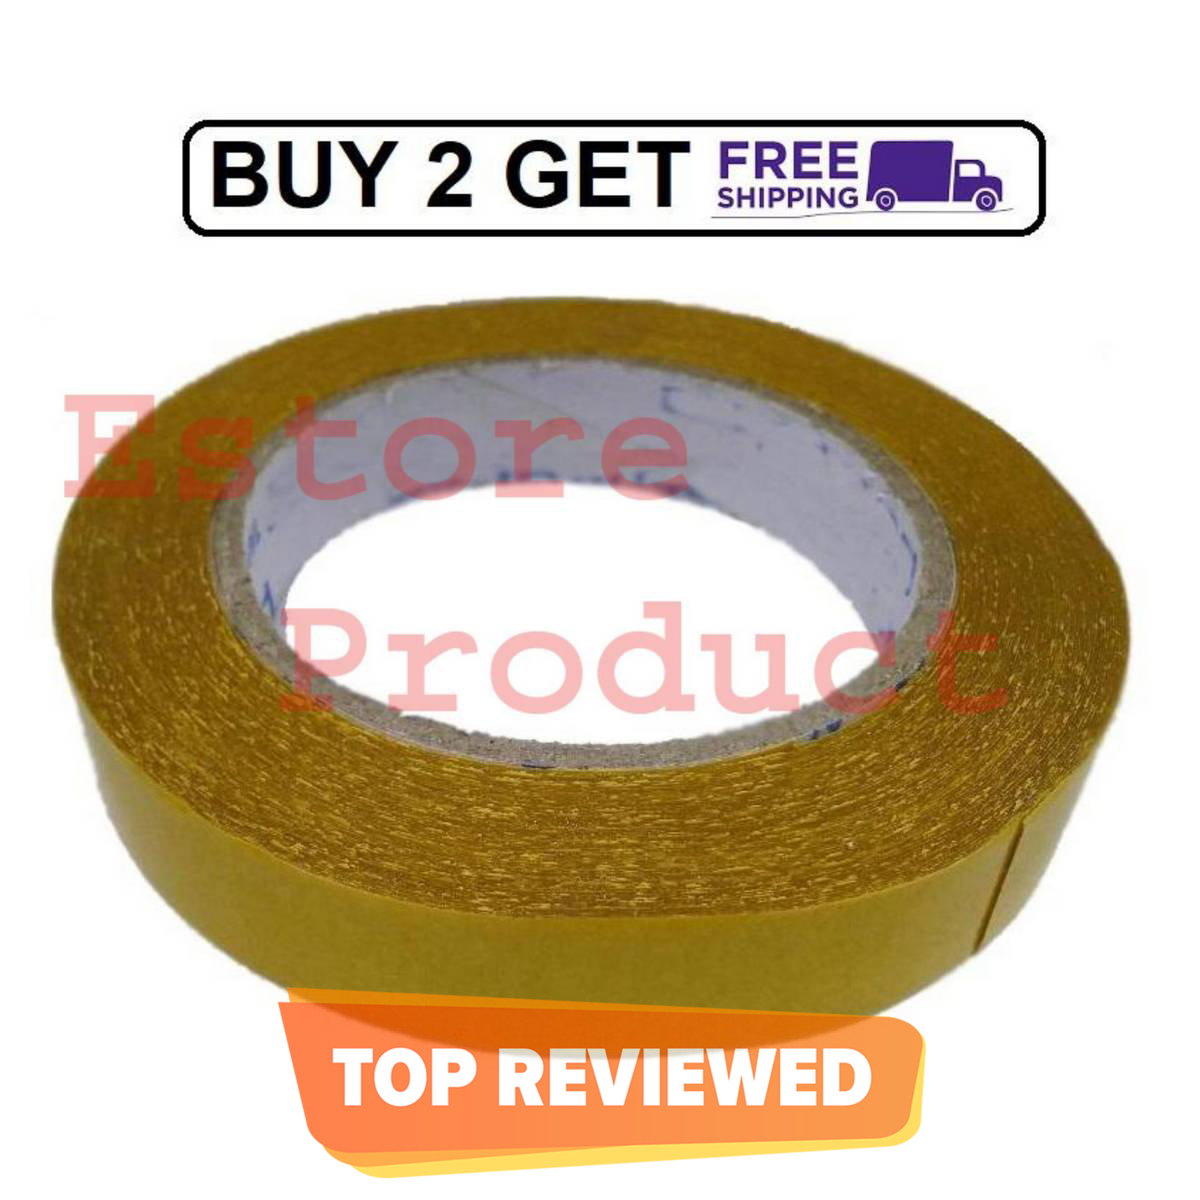 20m Good Quality Wig Unit Tape Mesh Design Strongly Hold on Dry Skin (Double-sided Adhesive)